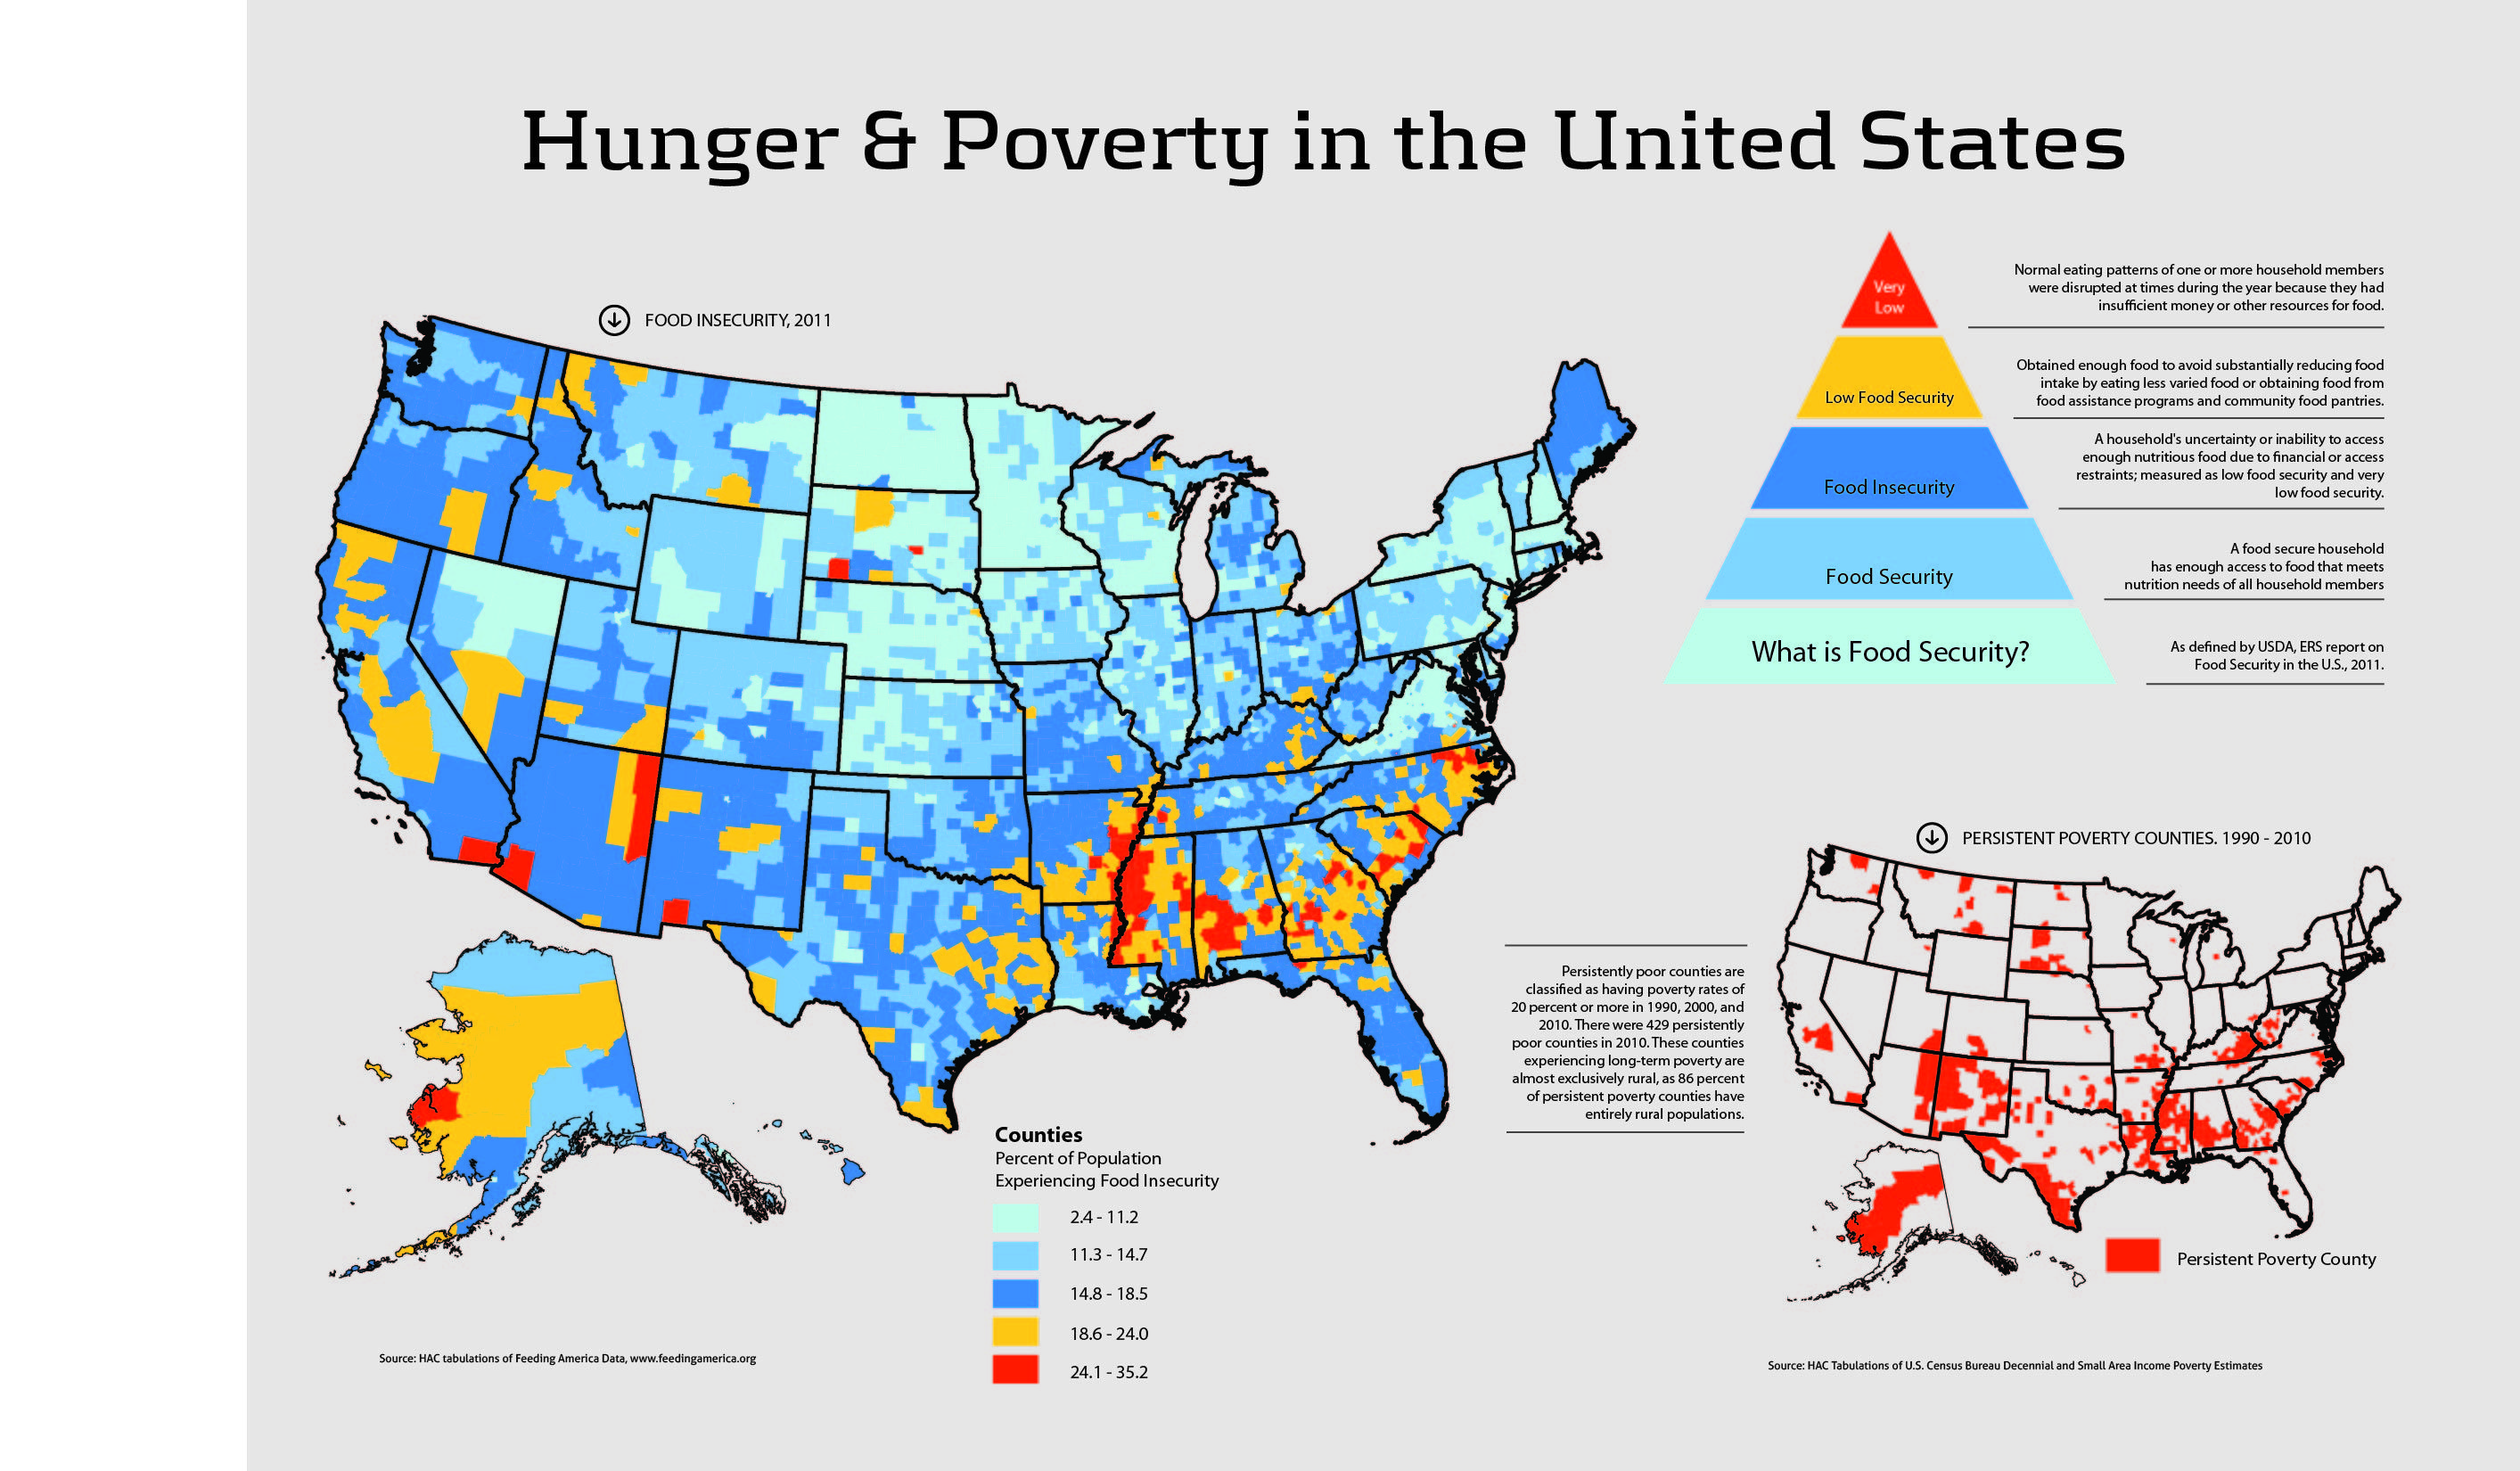 What Is Food Security This Map Helps To Show A Visual On